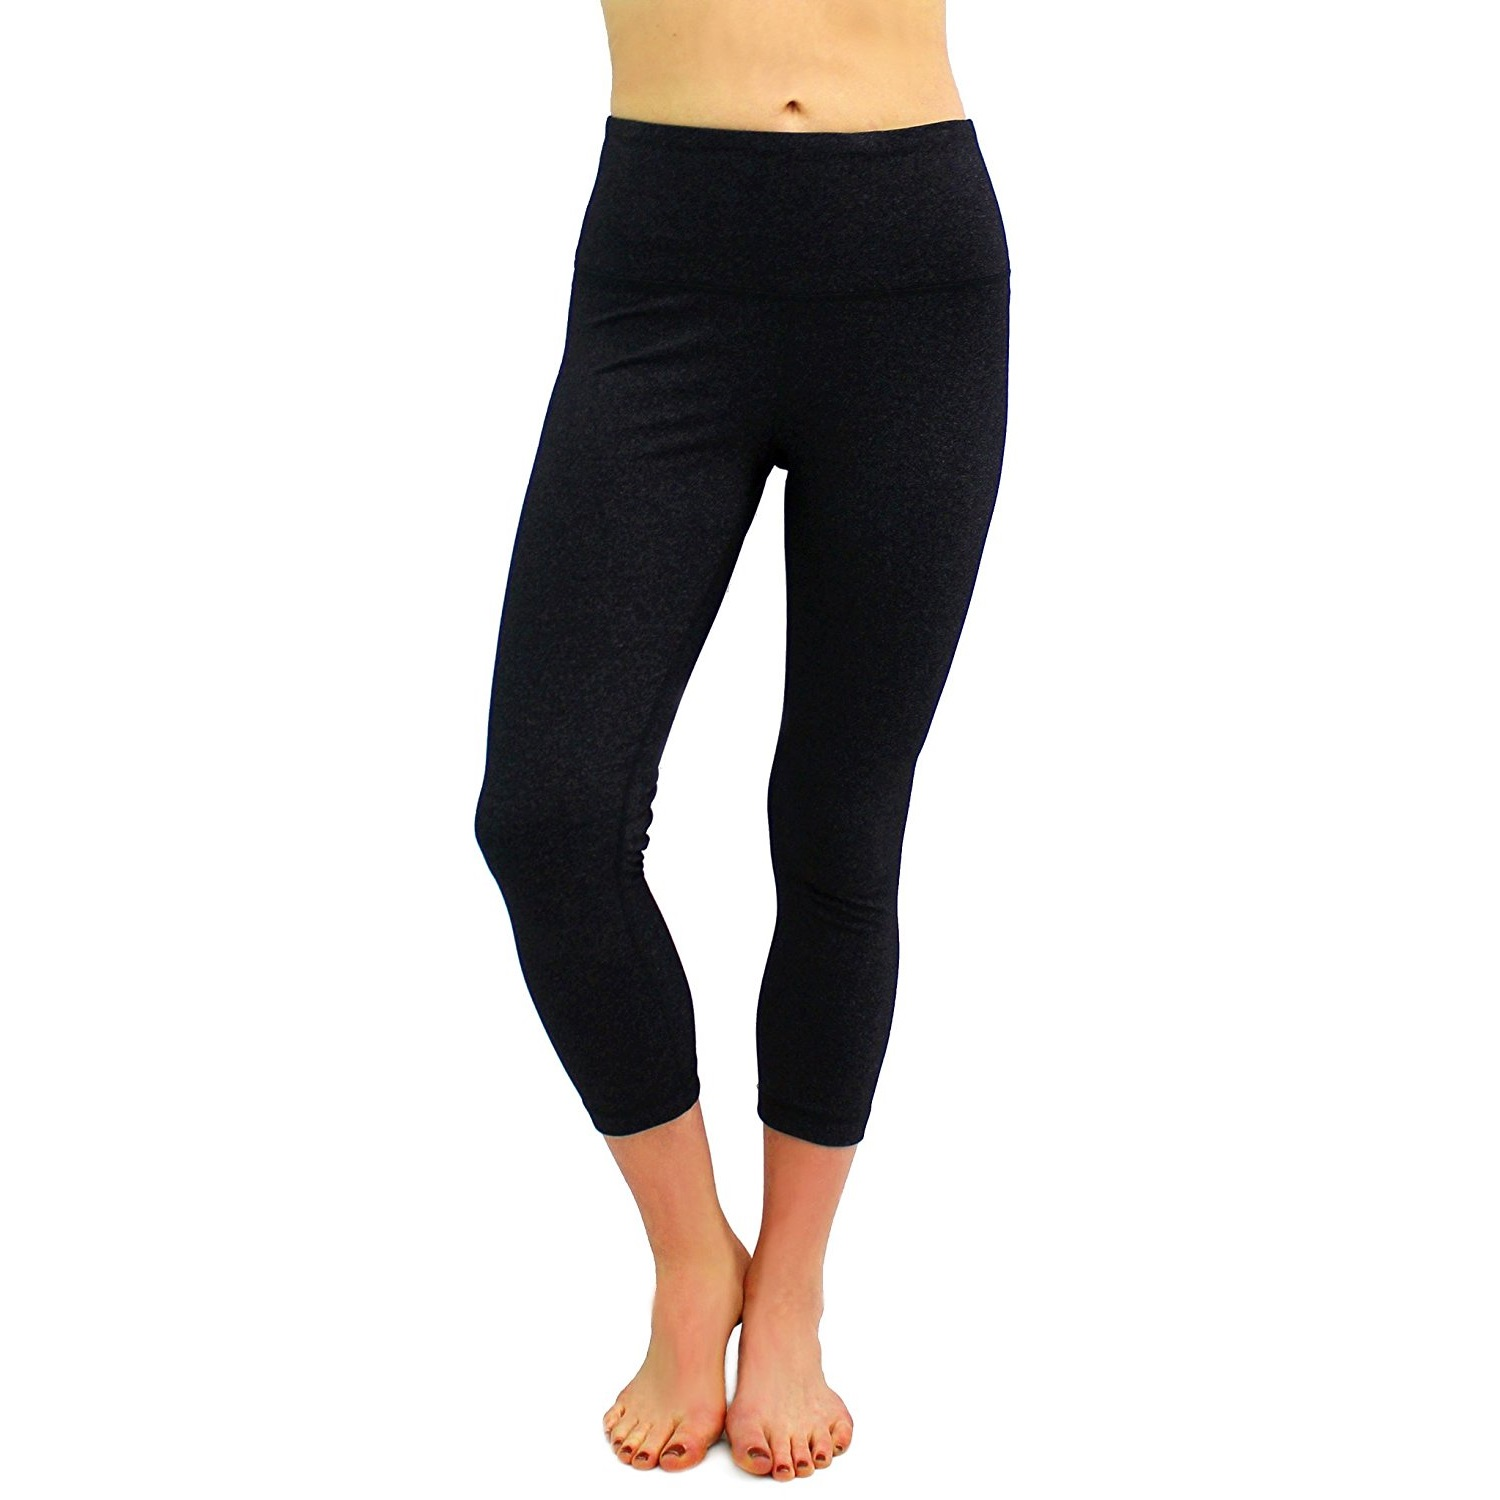 90 degree by reflex heather charcoal womens yoga capri pants